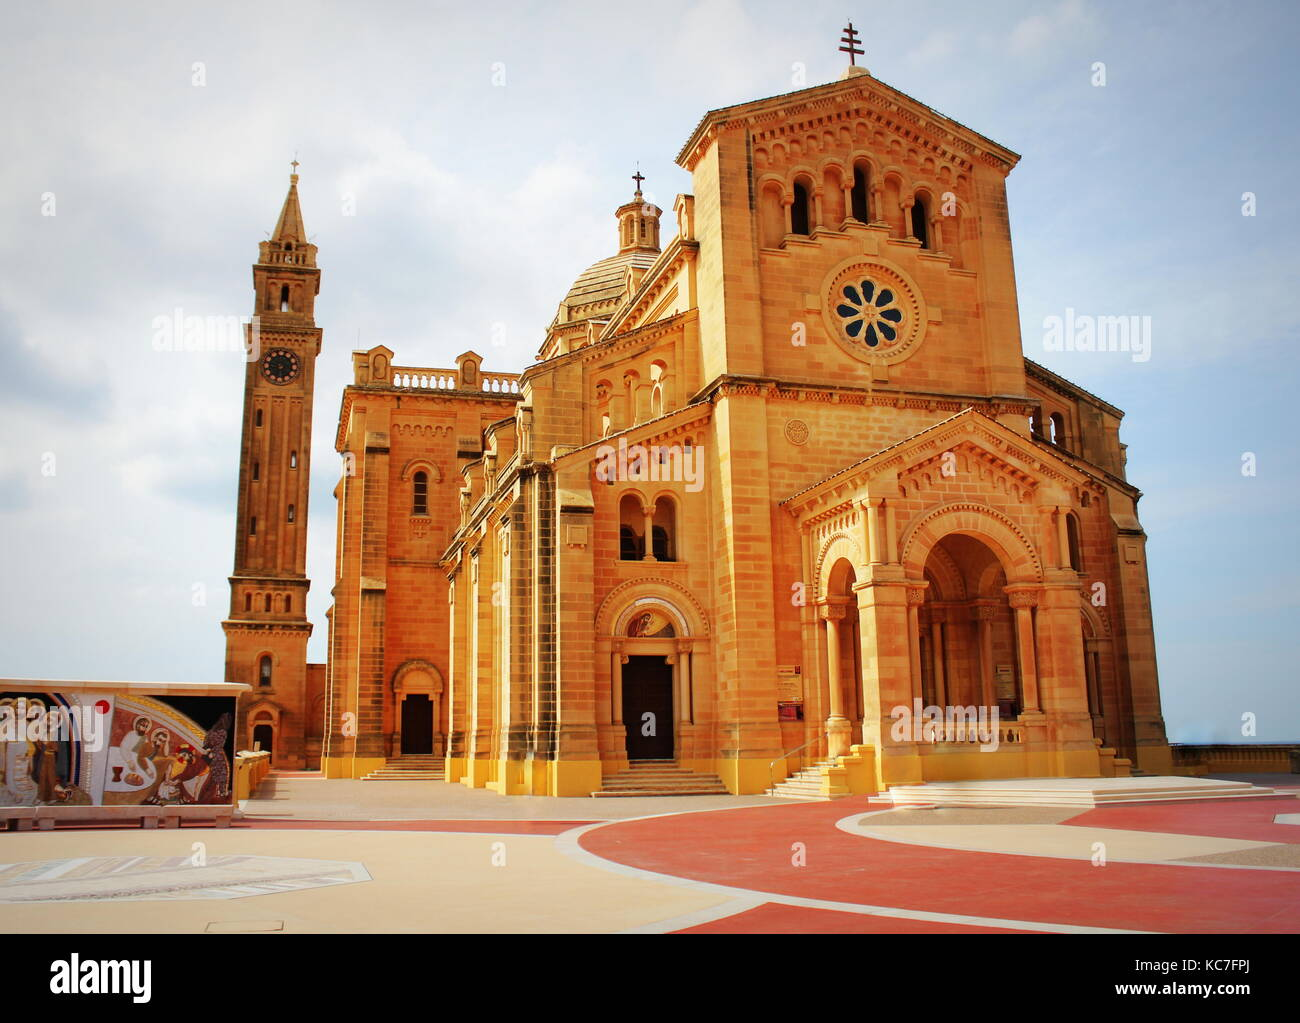 The basilica of the Virgin Of Ta Pinu near the village of Gharb in Gozo - Stock Image